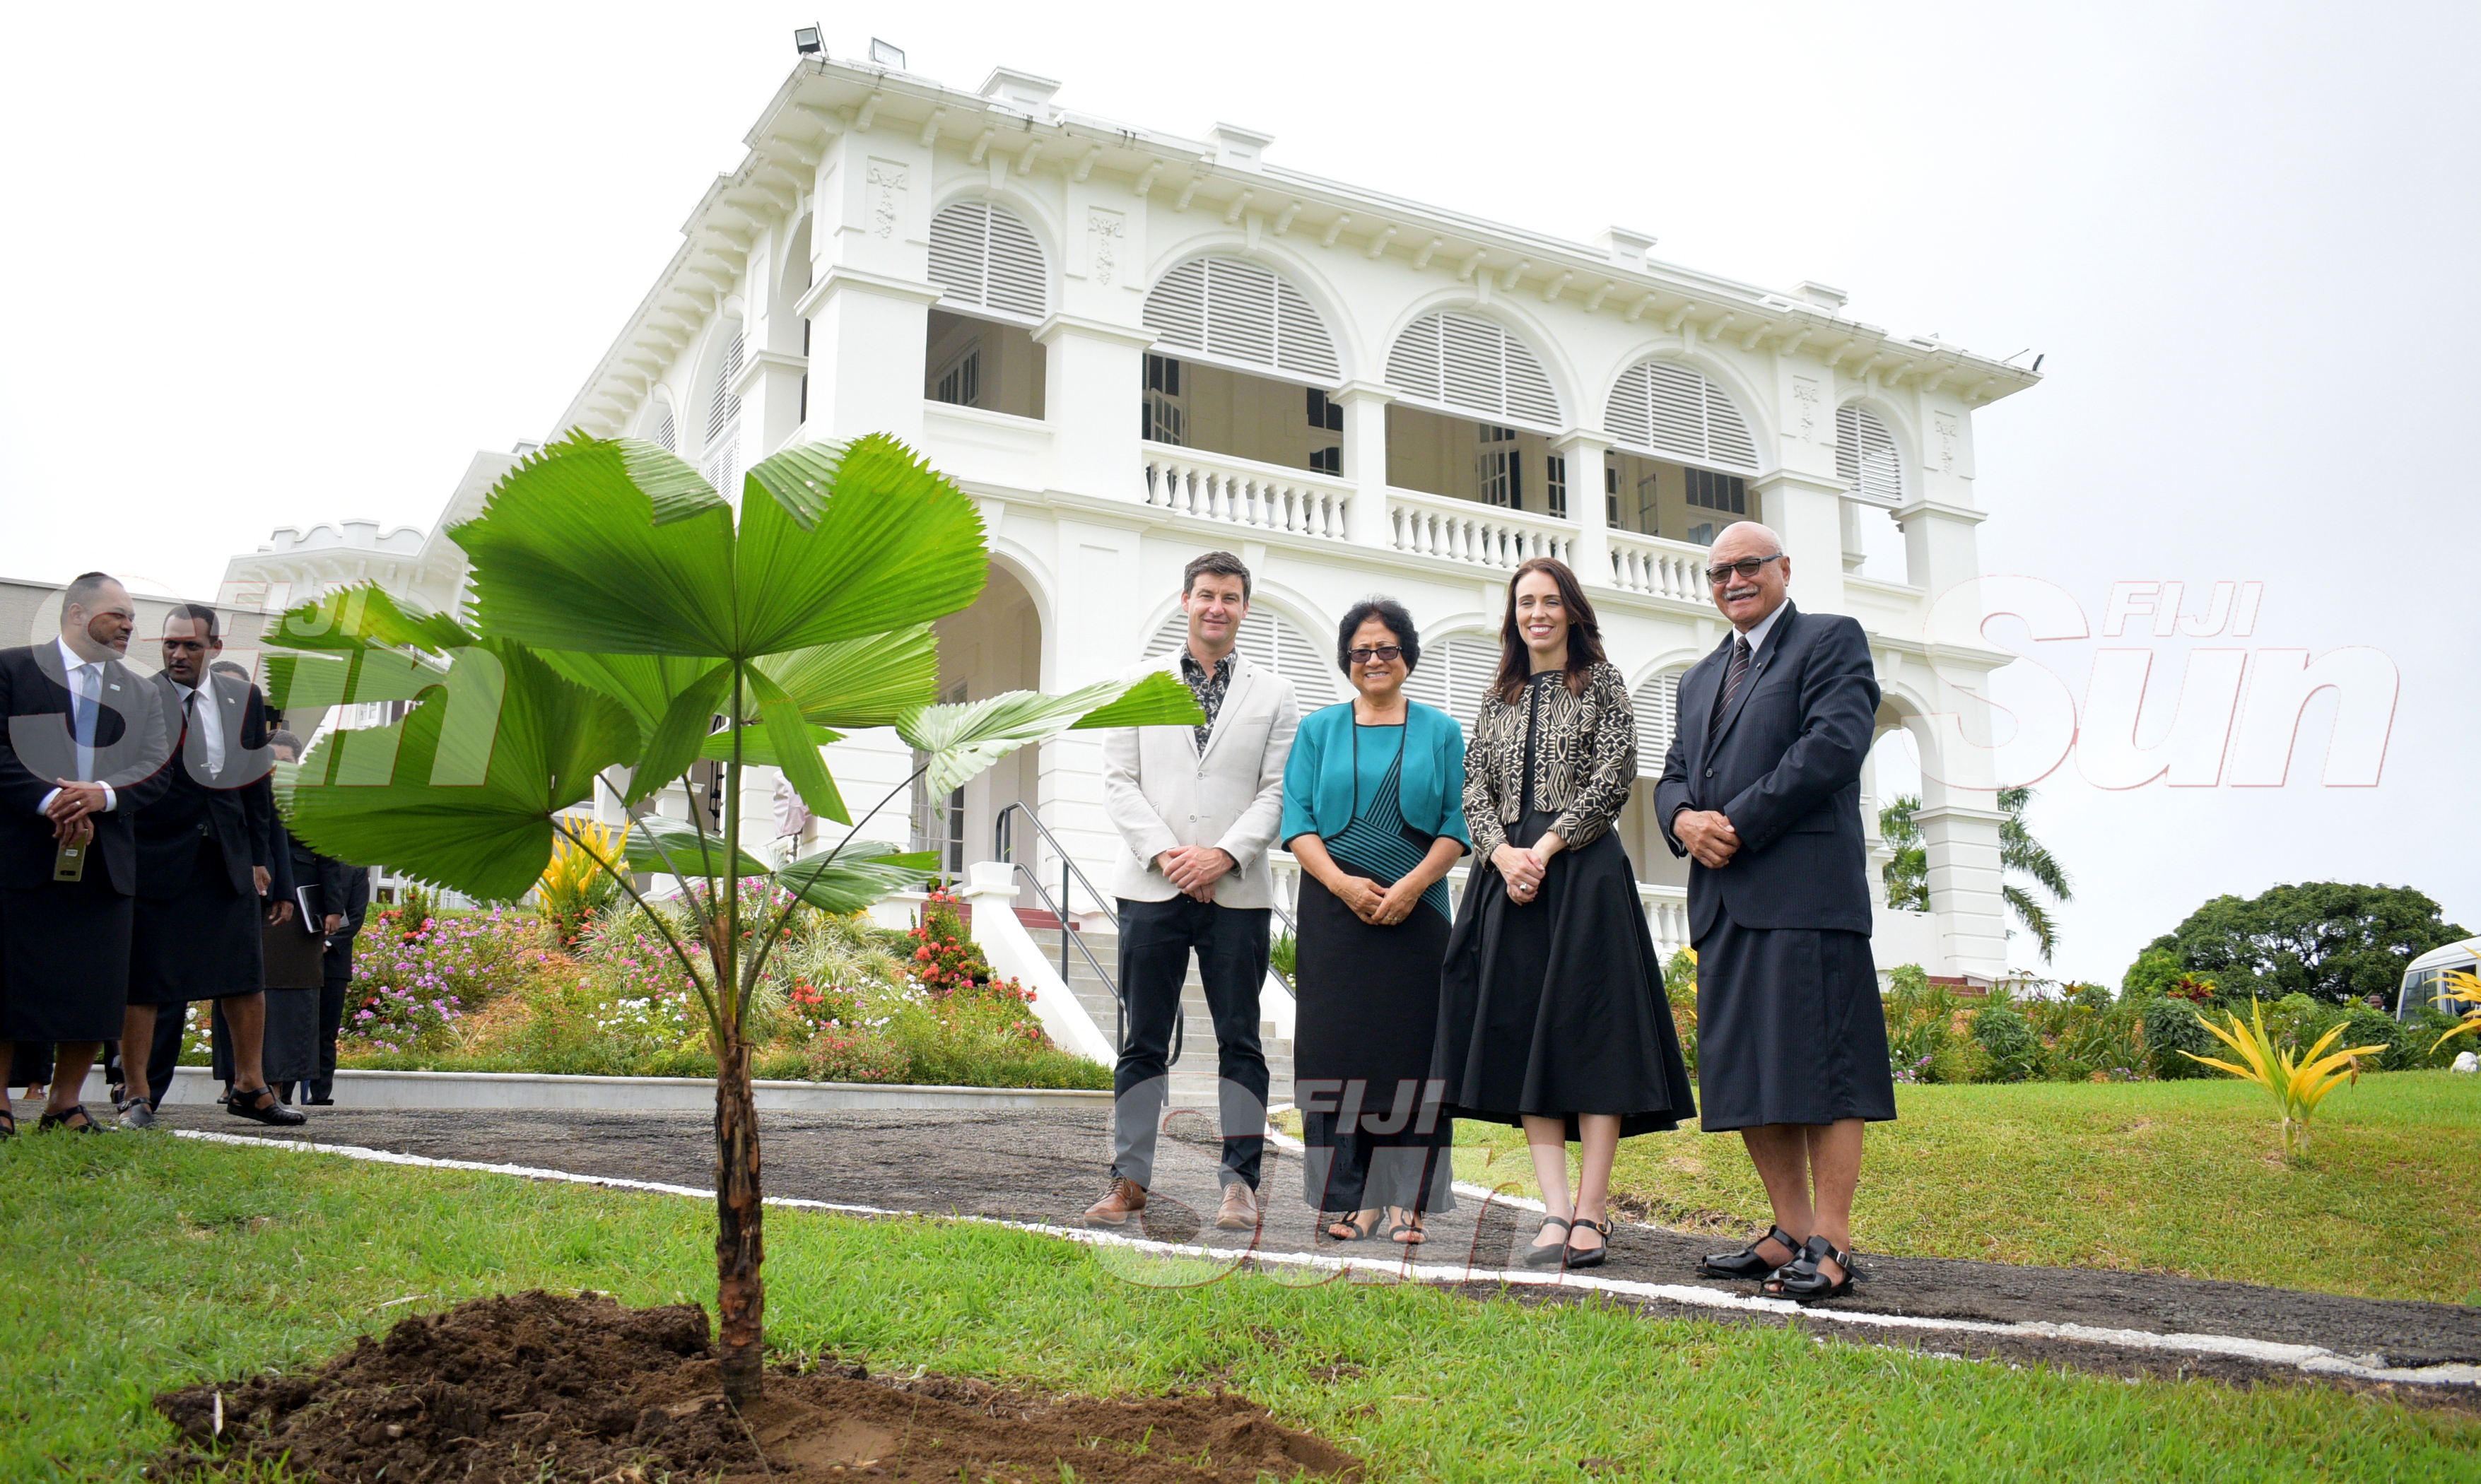 From left- Clarke Gayford, First Lady Sarote Konrote, New Zealand Prime Minister Jacinda Ardern and President Jioji Konrote after the tree planting ceremony at State House on February 25, 2020. Photo: Ronald Kumar.